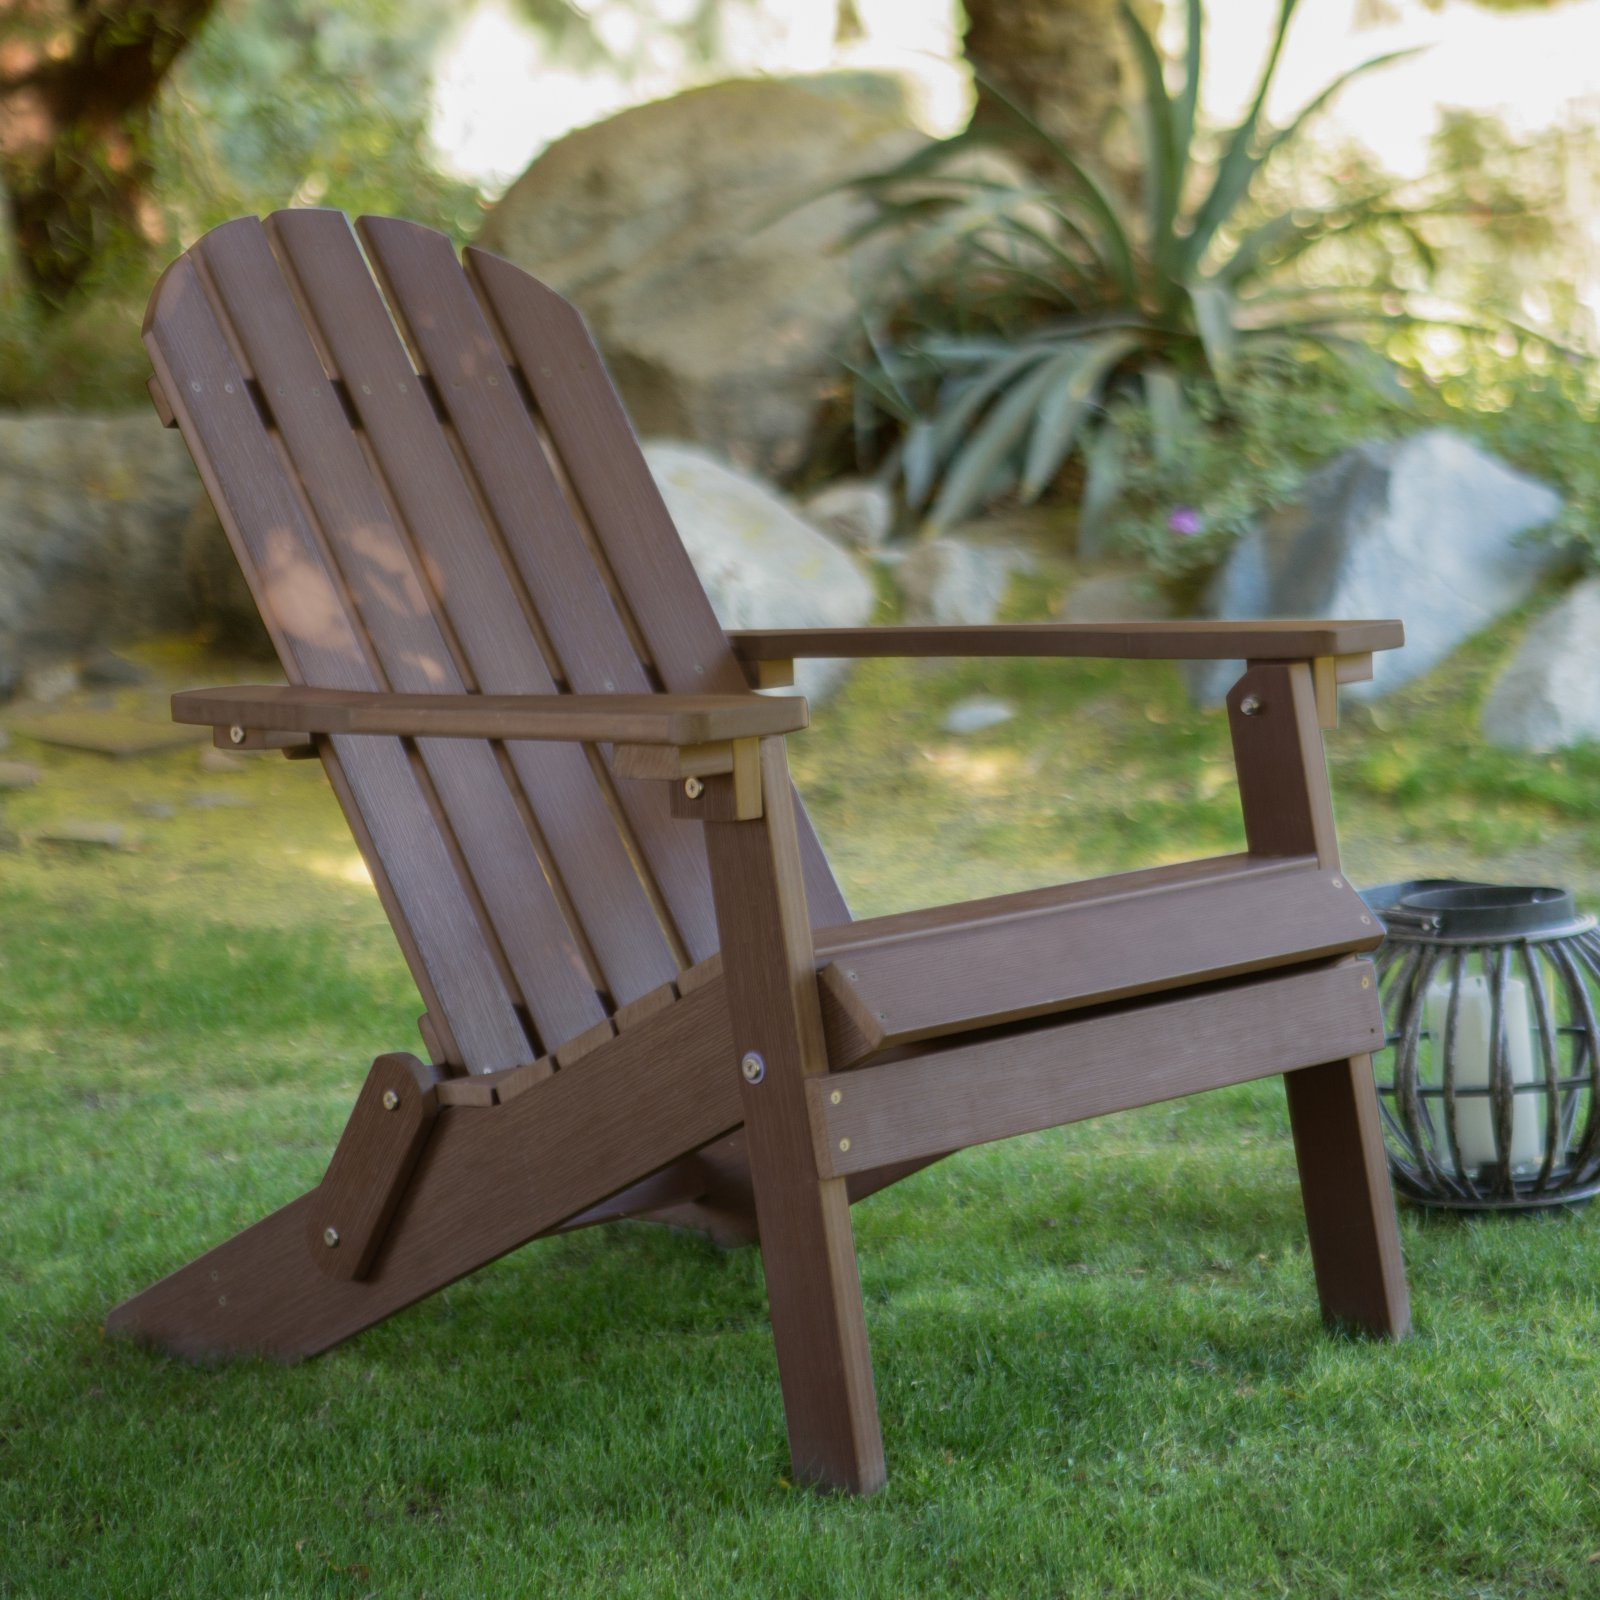 Lifetime Adirondack Chair Belham Living All Weather Resin Adirondack Chair Chocolate Brown